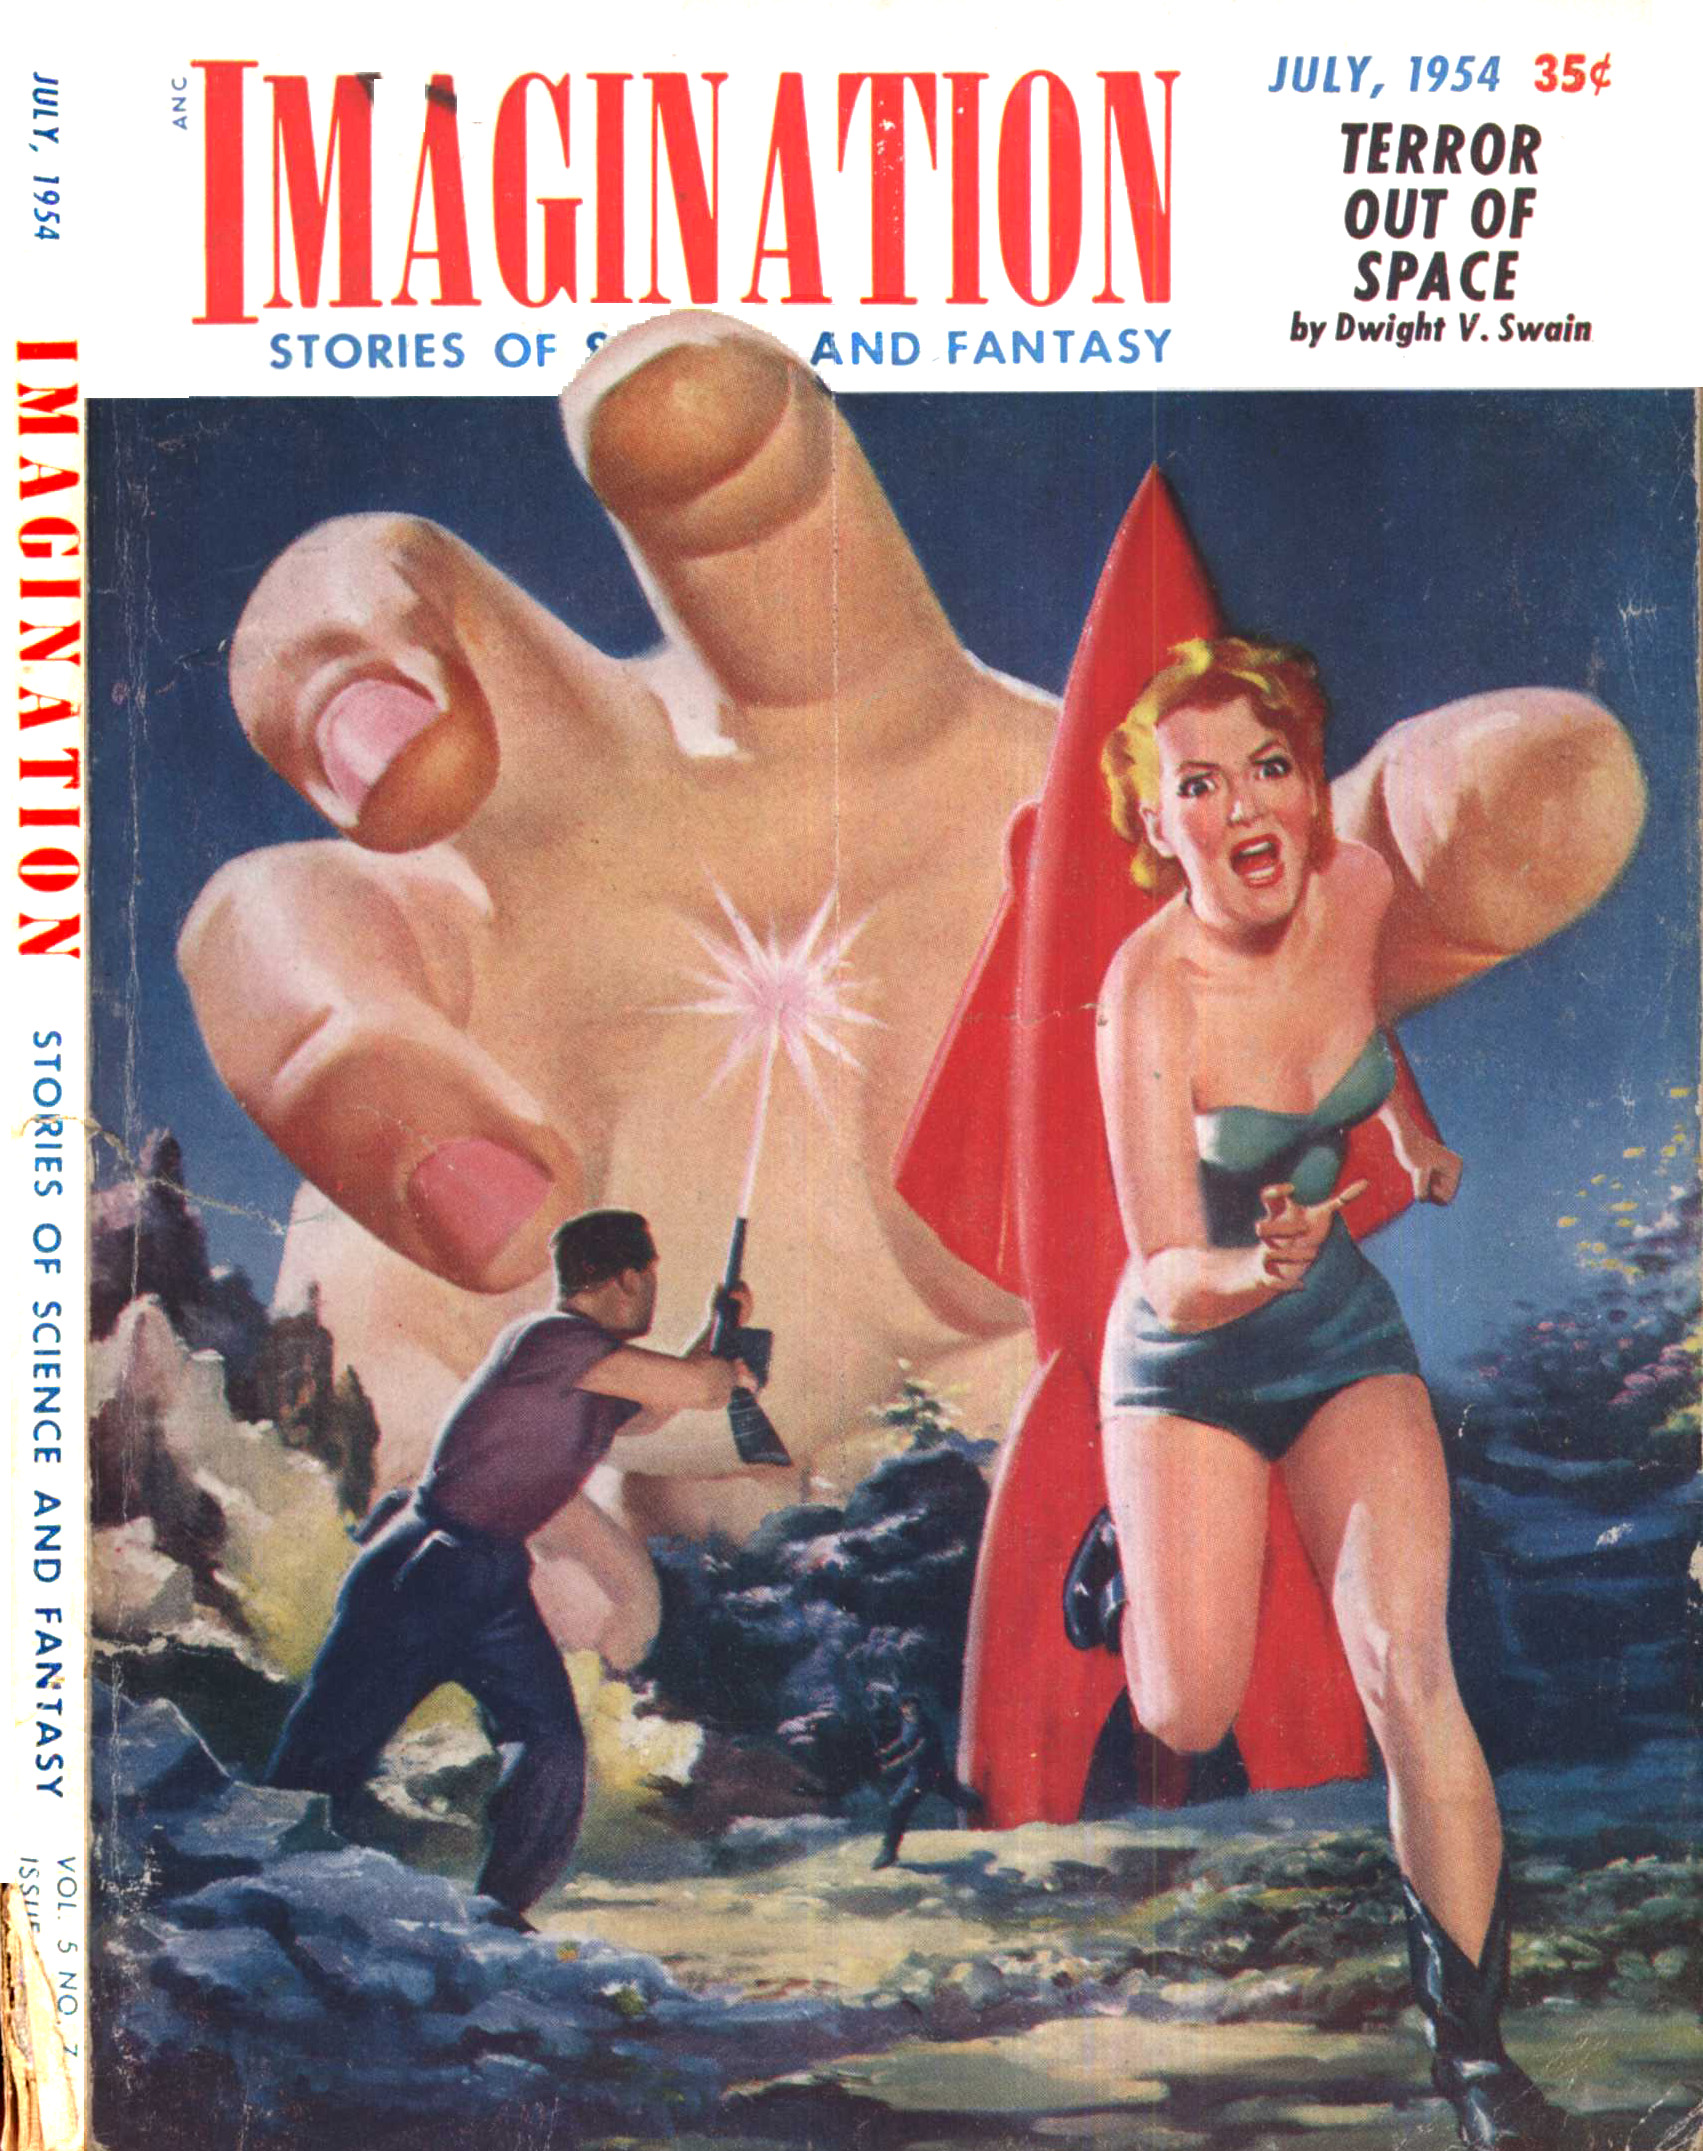 Harod McCauley cover art -- a giant hand reaches for a spacewoman exploring in her bathing suit.